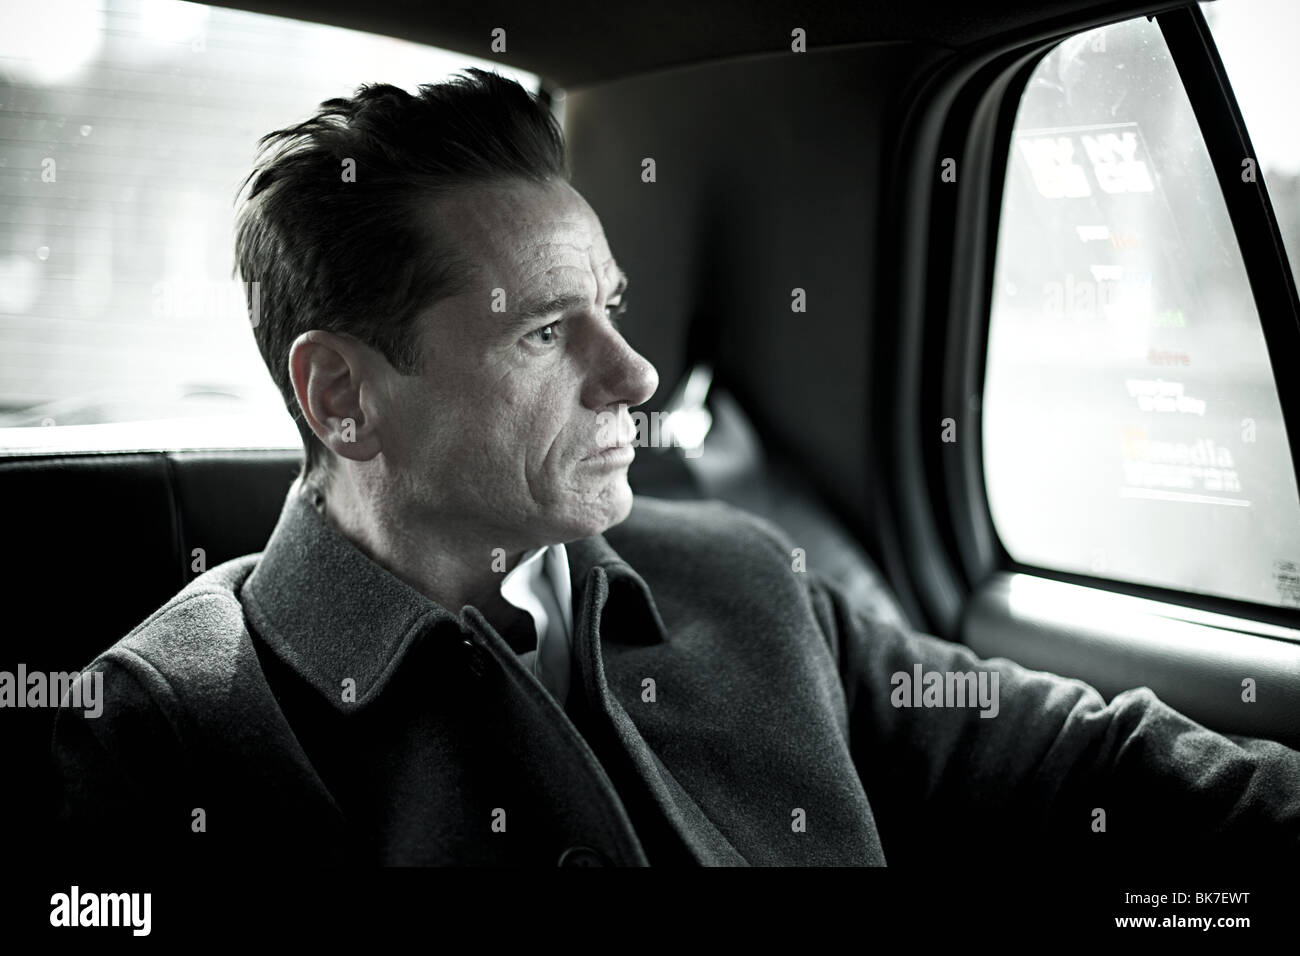 Man in taxi cab - Stock Image